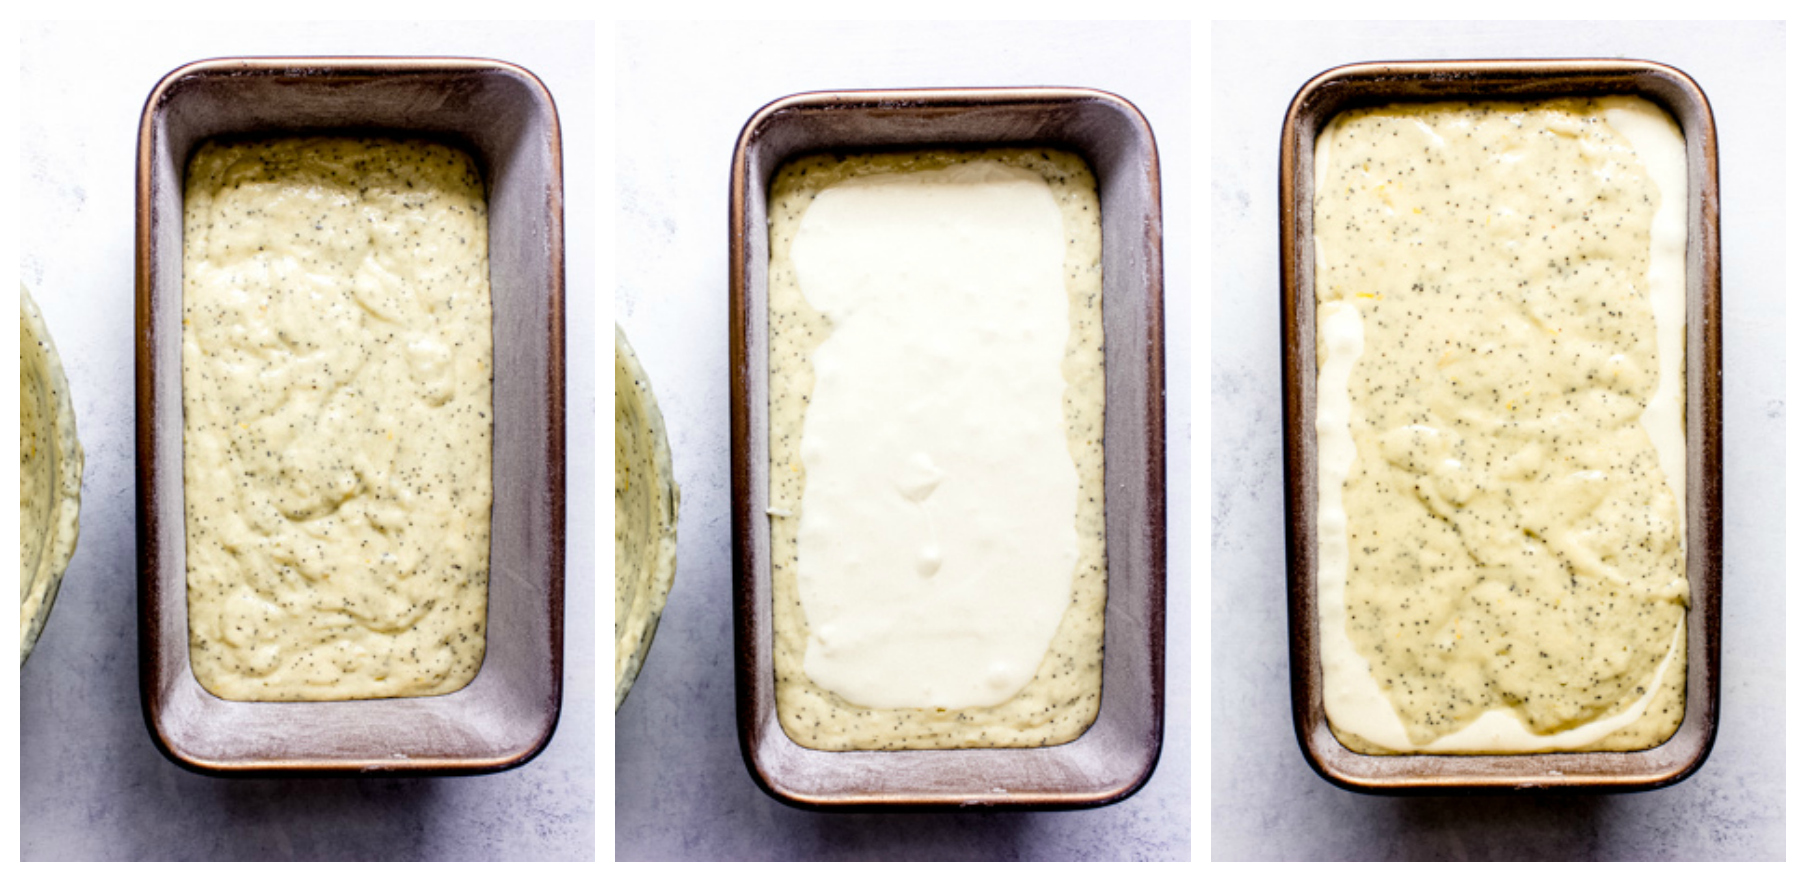 lemon poppy seed loaf cake batter in a pan